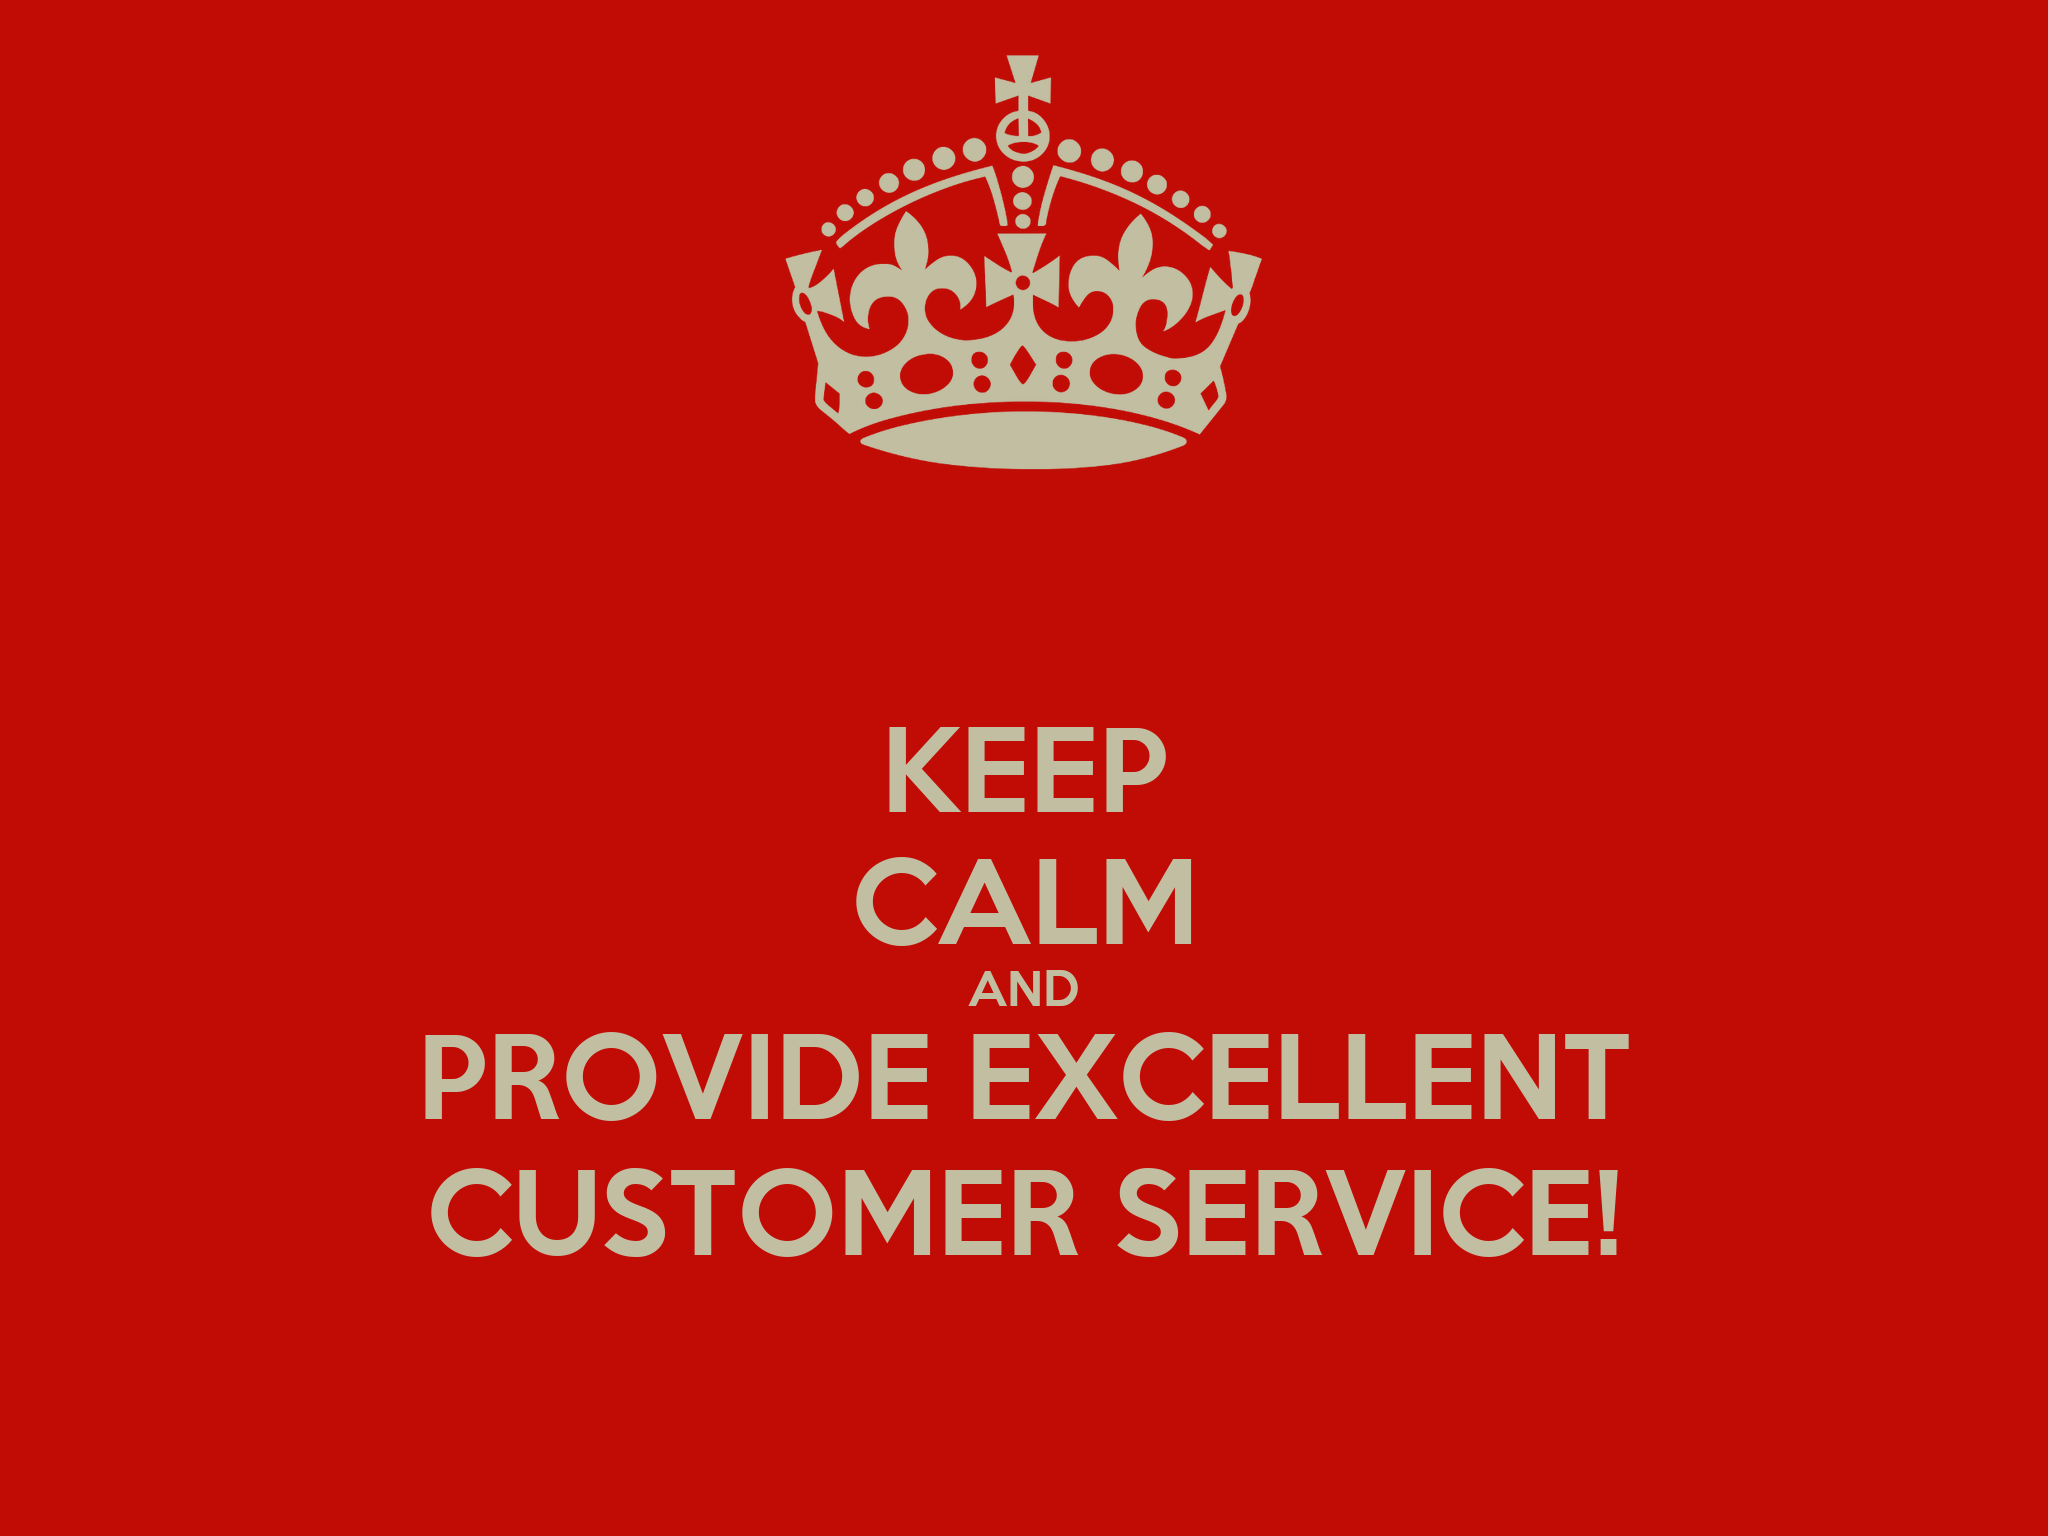 provide example of excellent customer service